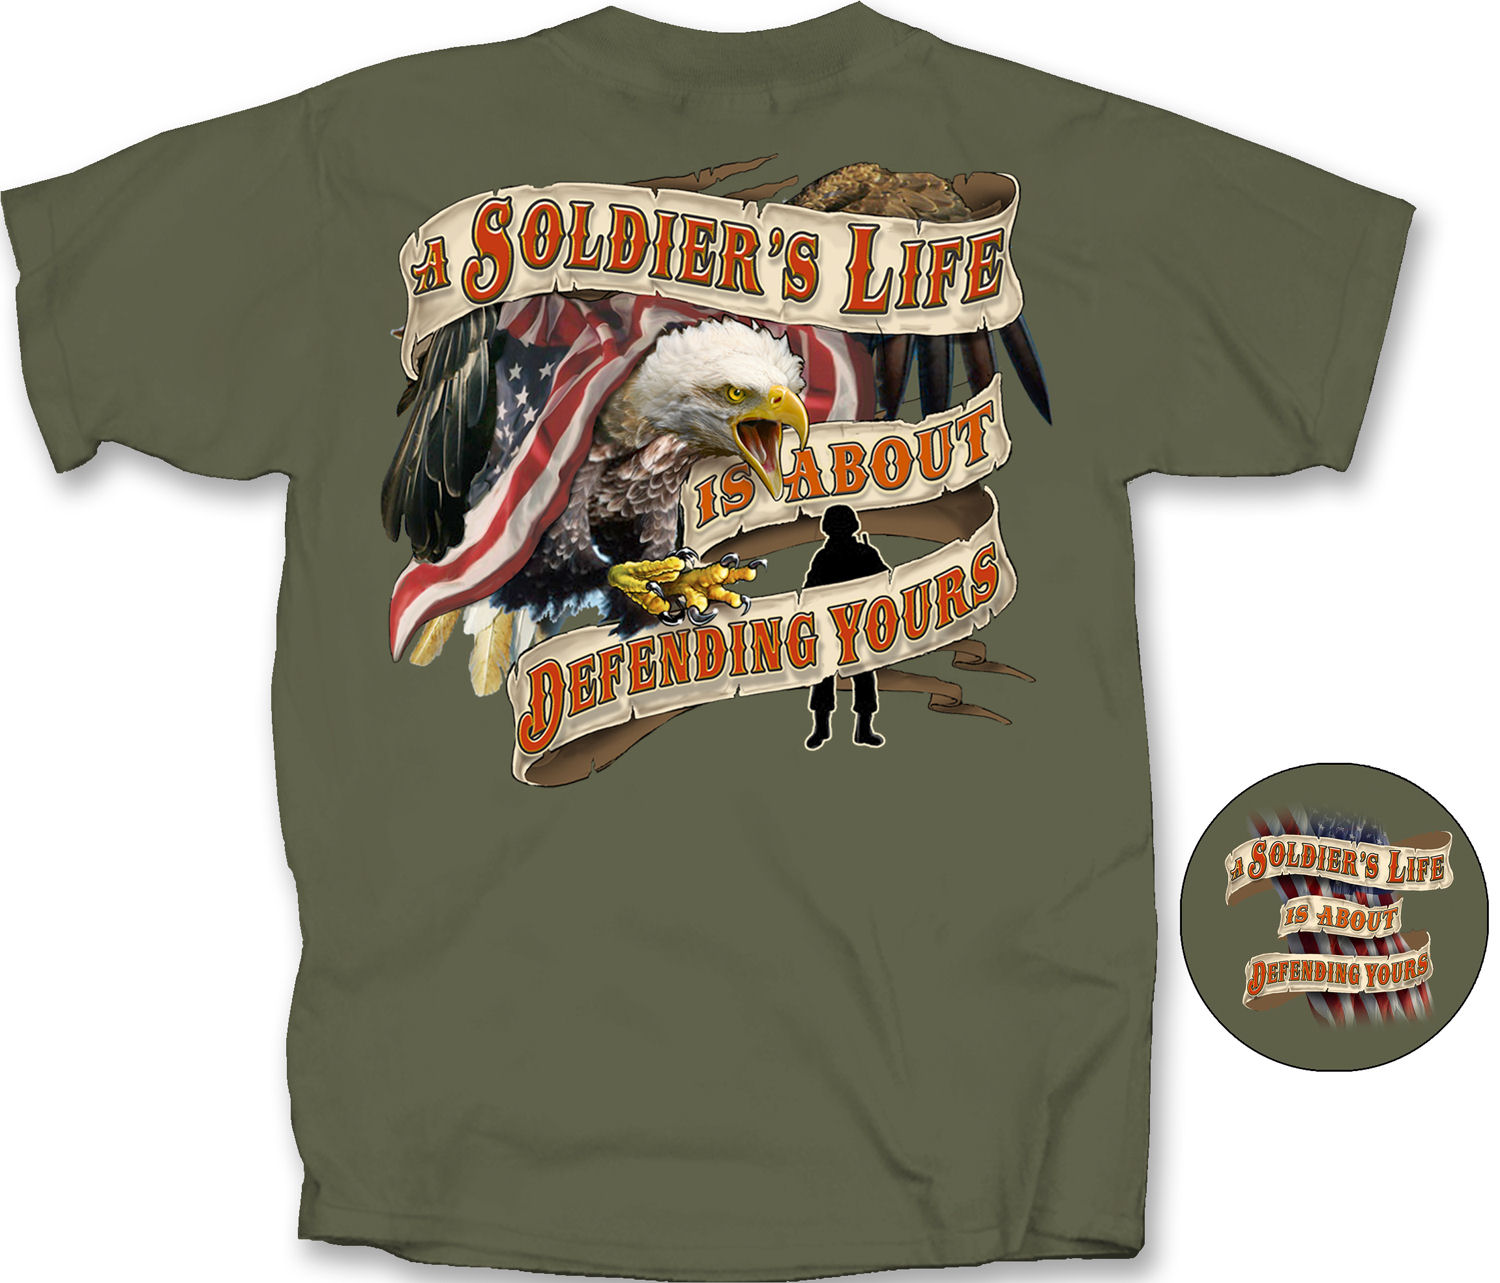 Military T Shirts: How To Wear